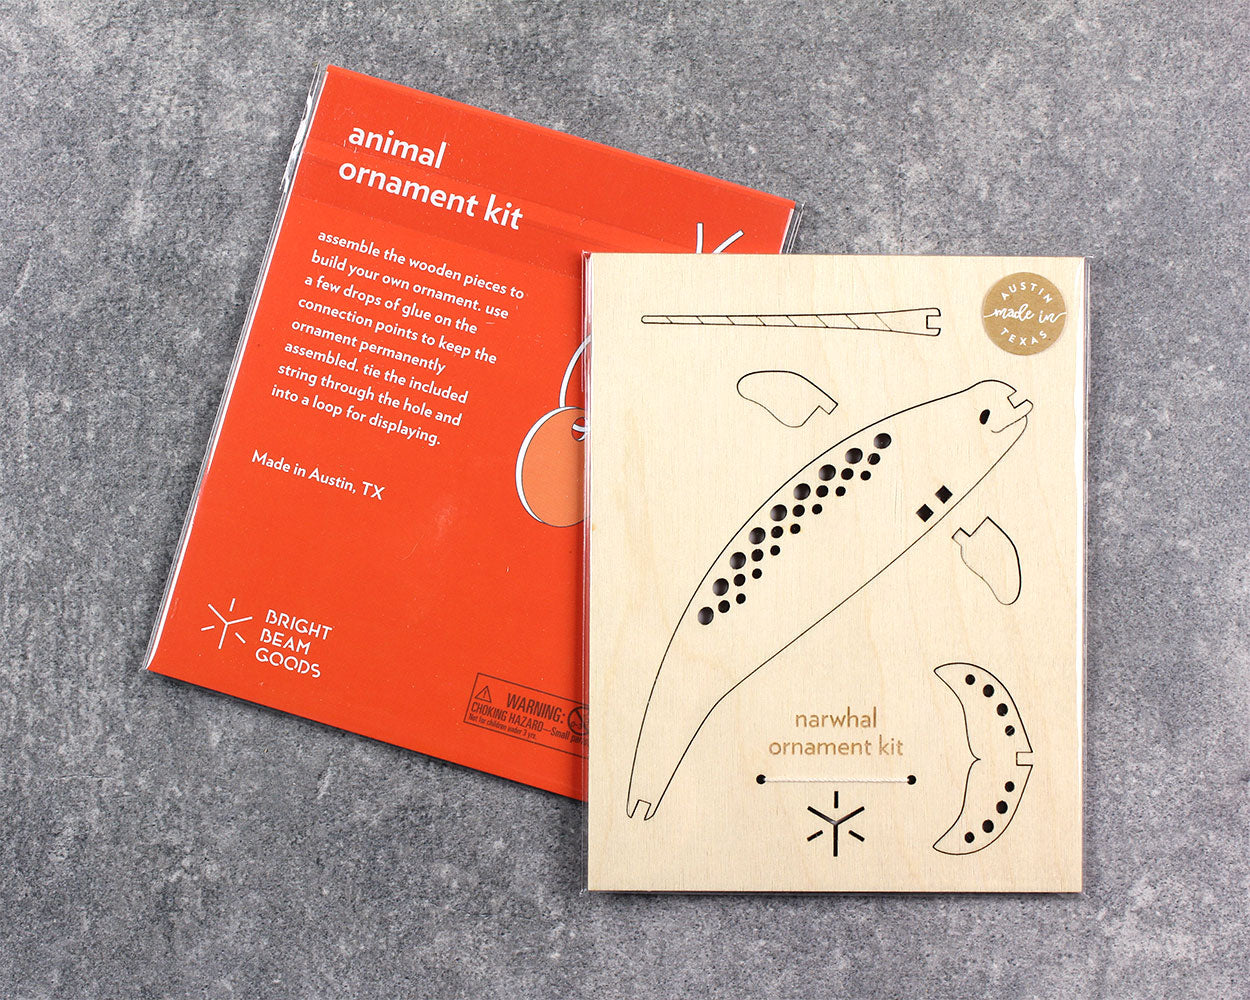 Flatpack Ornament Kit | Narwhal Ornament Bright Beam Goods - Stash Co